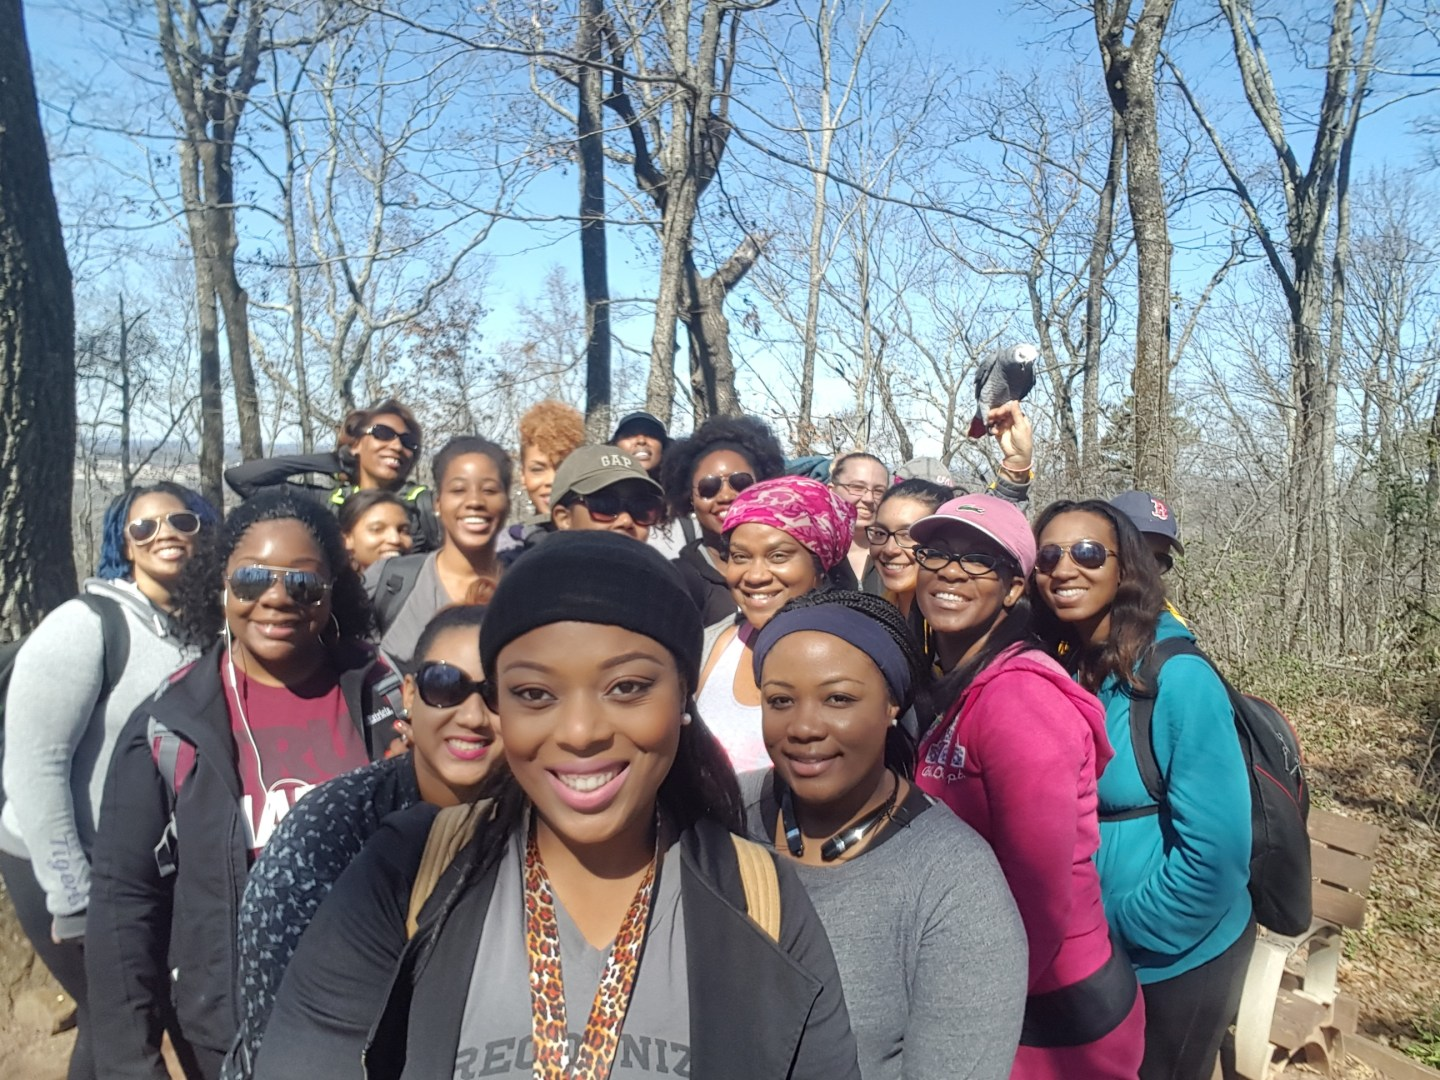 20170304_110549-1440x1080 Ladies Who Hike: Traveling the Birmingham, Alabama Trails